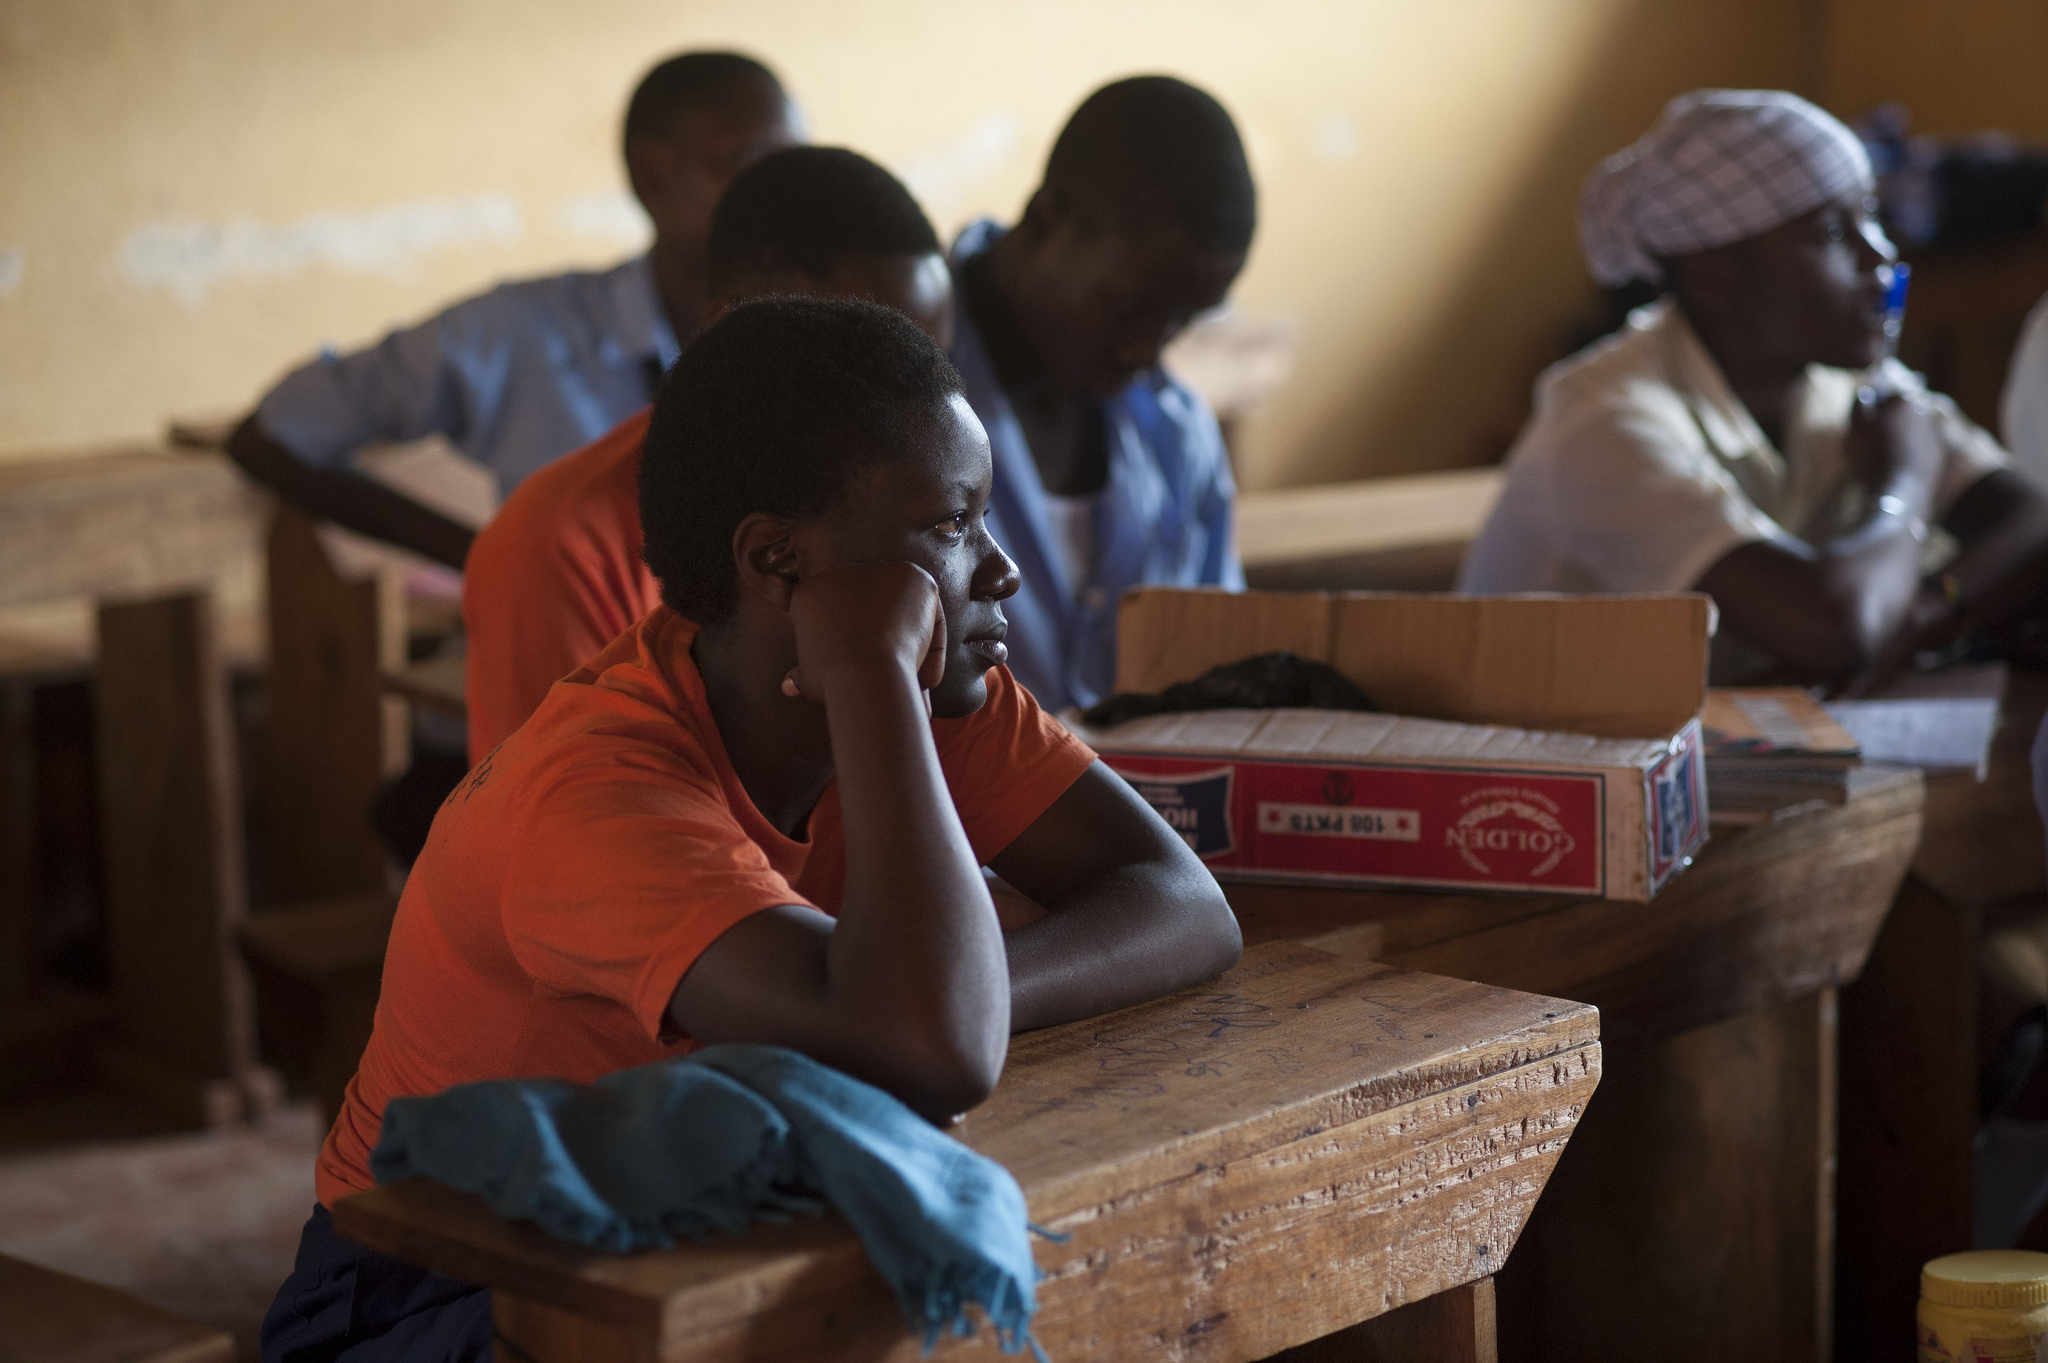 - Seven billion young people will enroll in secondary school in Africa by the end of this century